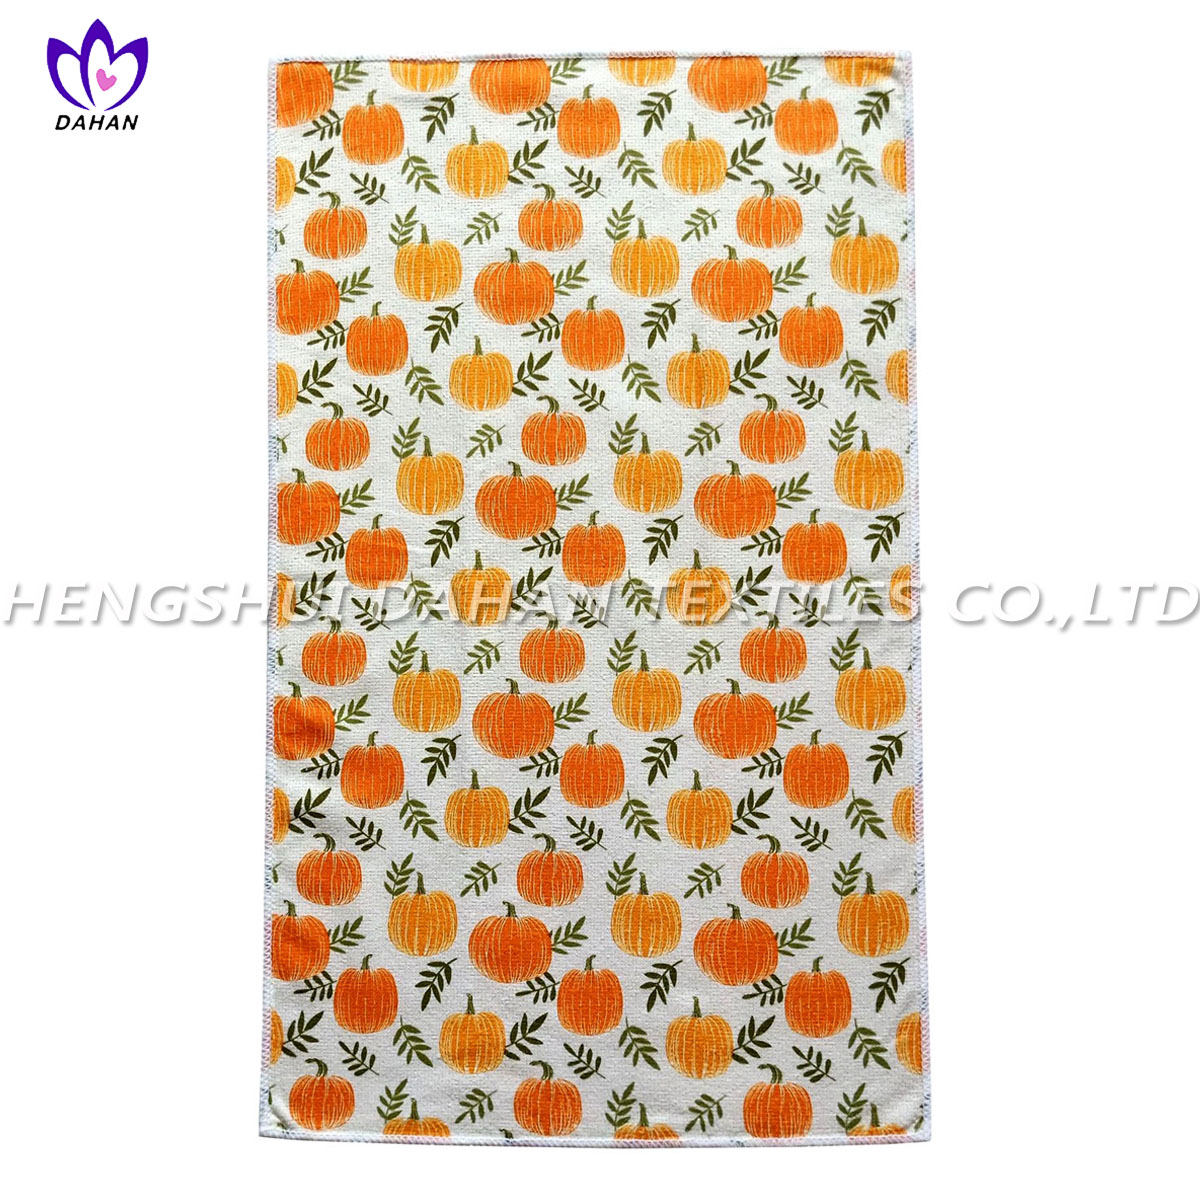 MC104 Microfiber printing kitchen towel.